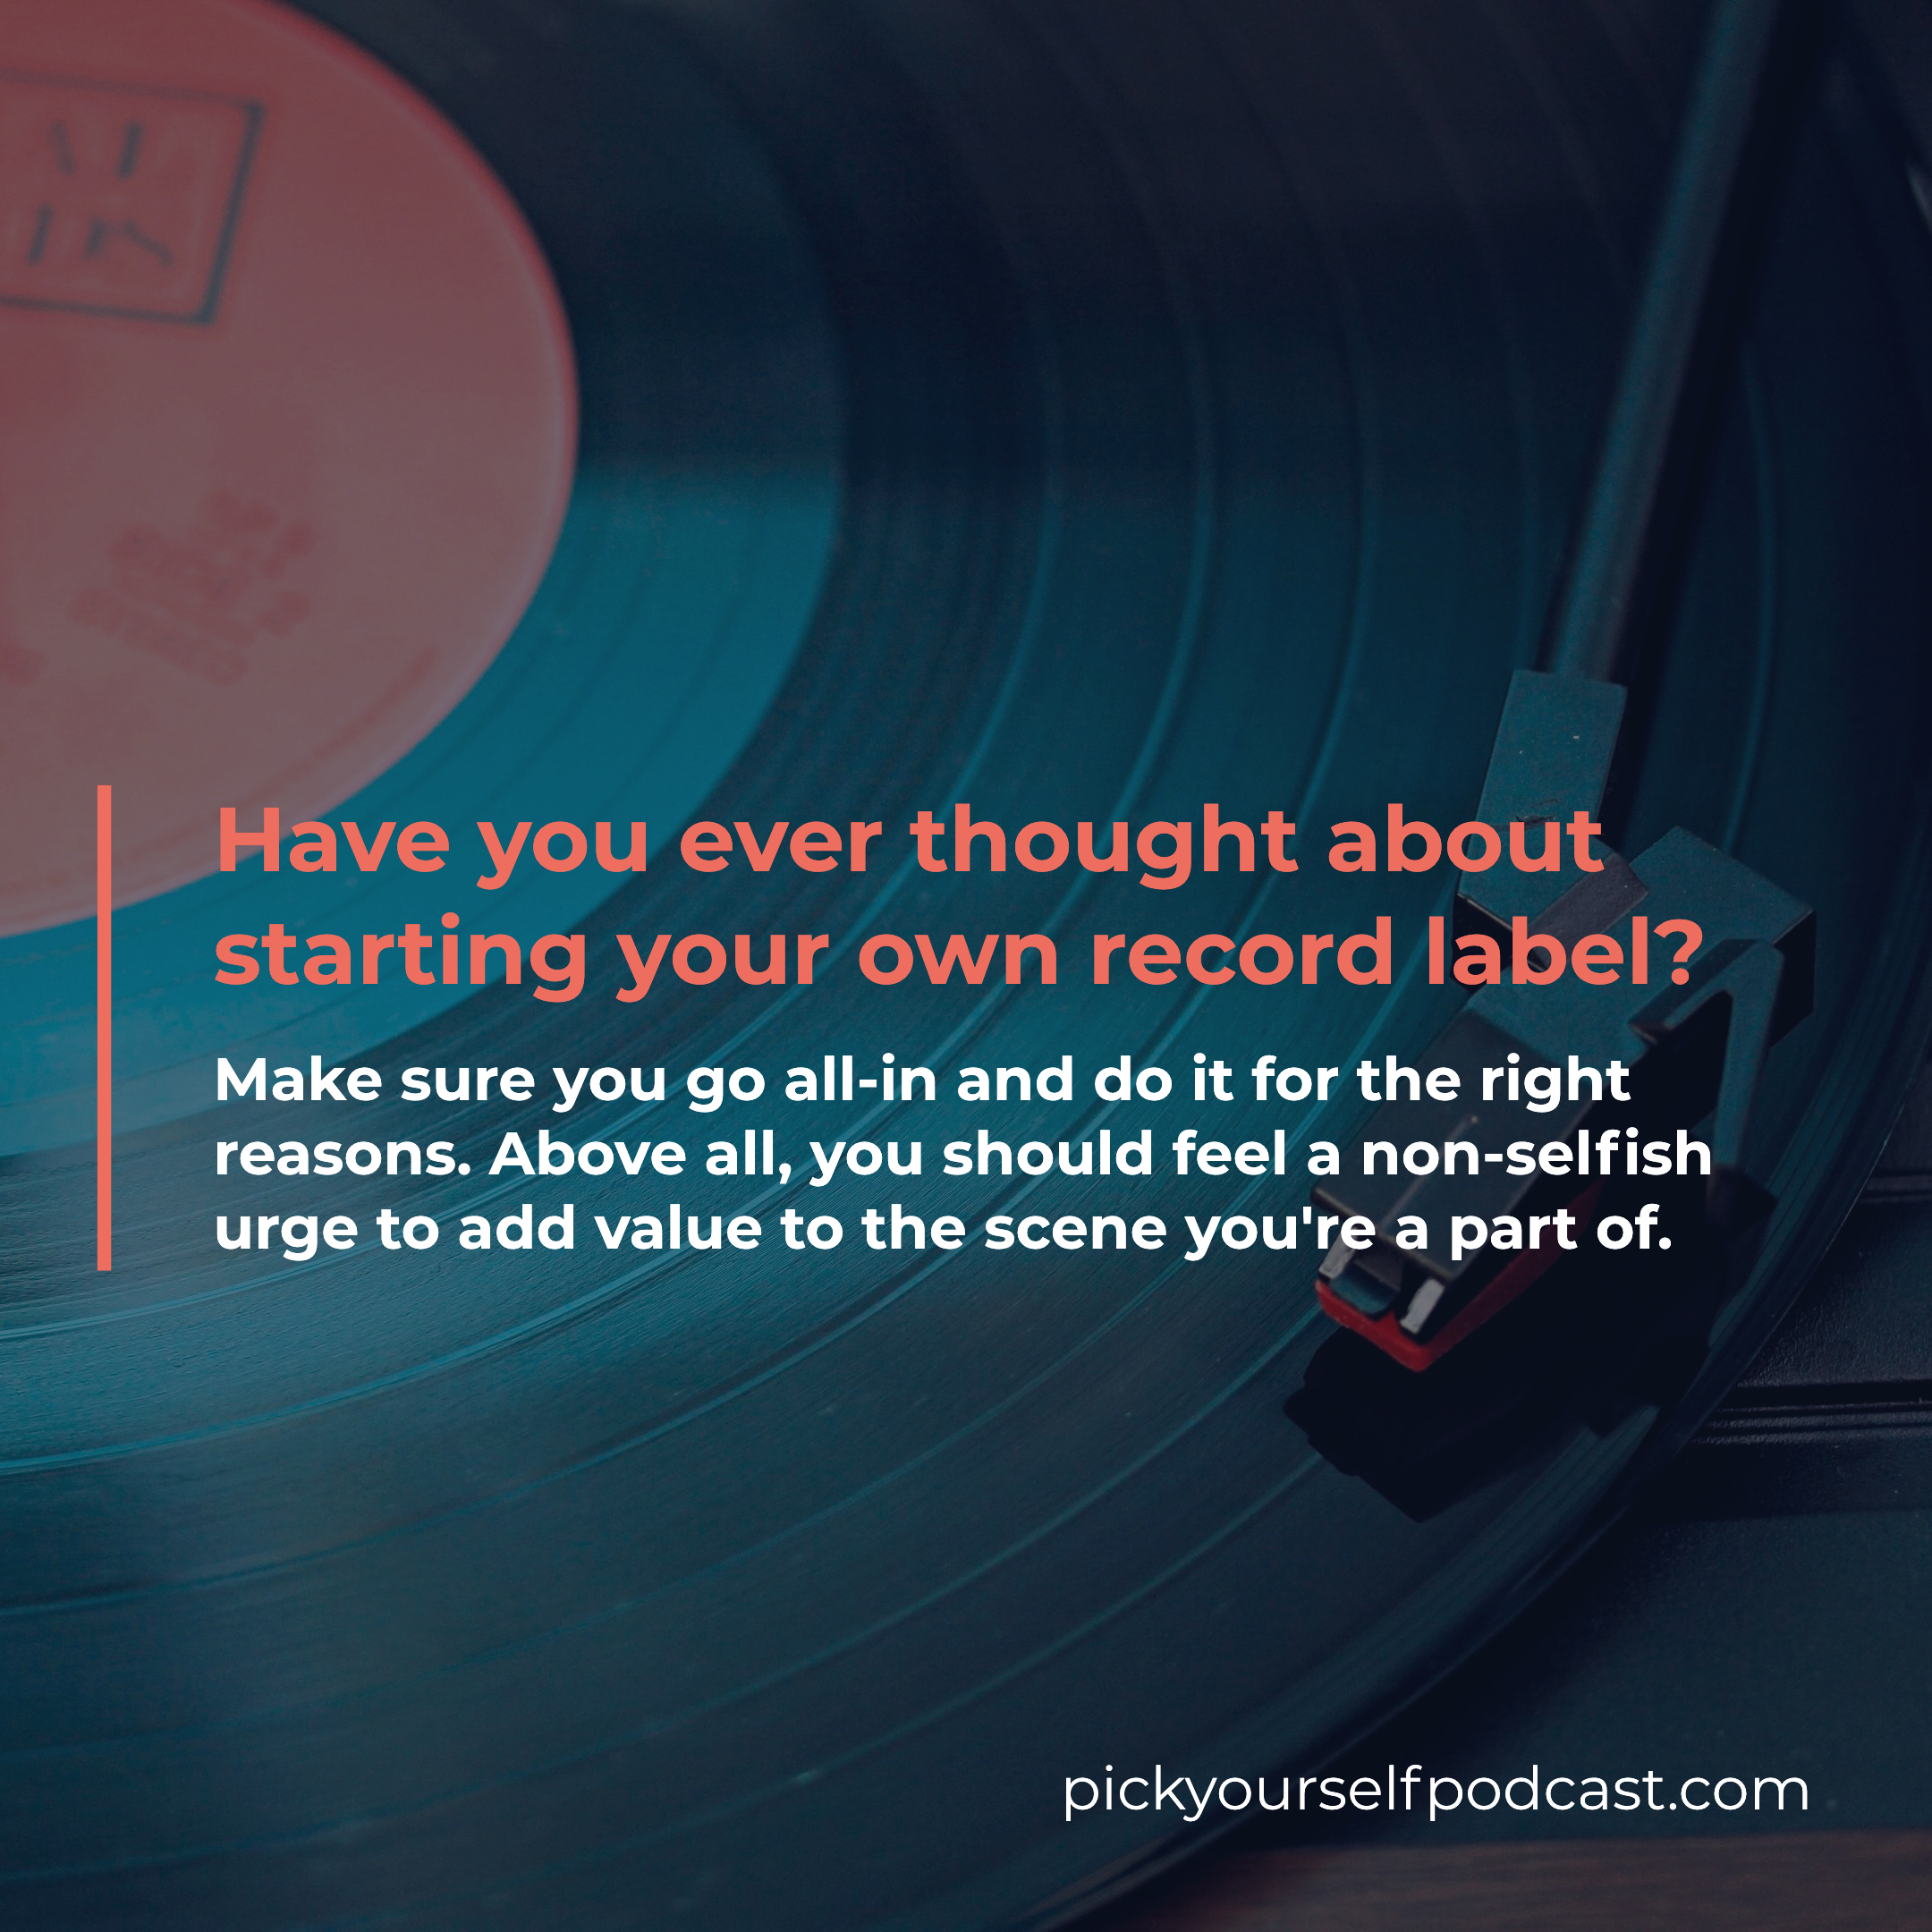 Should you start a record label visual 01. It tells you to make sure you go all in and do it for the right reasons.